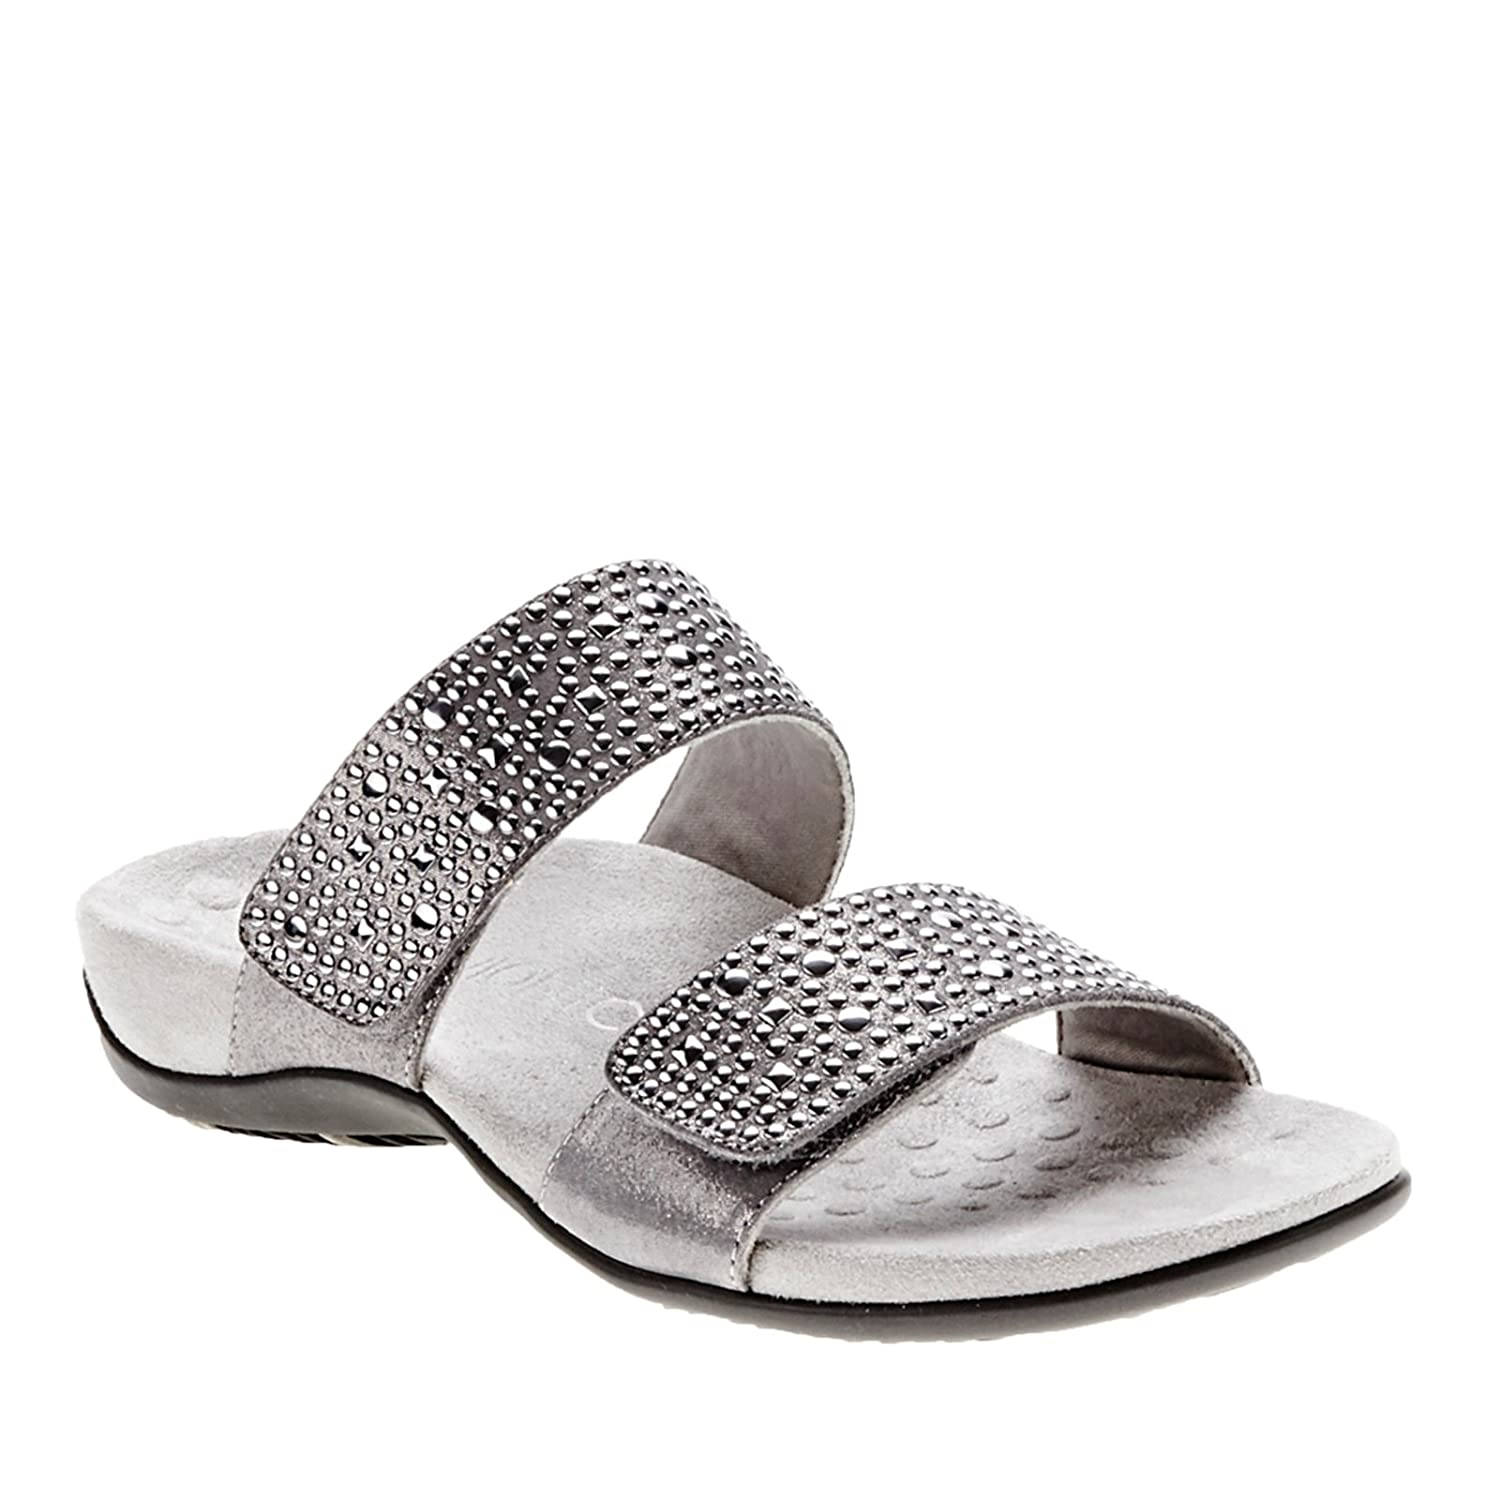 3f58620d0f2 Available For Vionic Women s Samoa Slide Sandal Pewter 11 W On Store ...